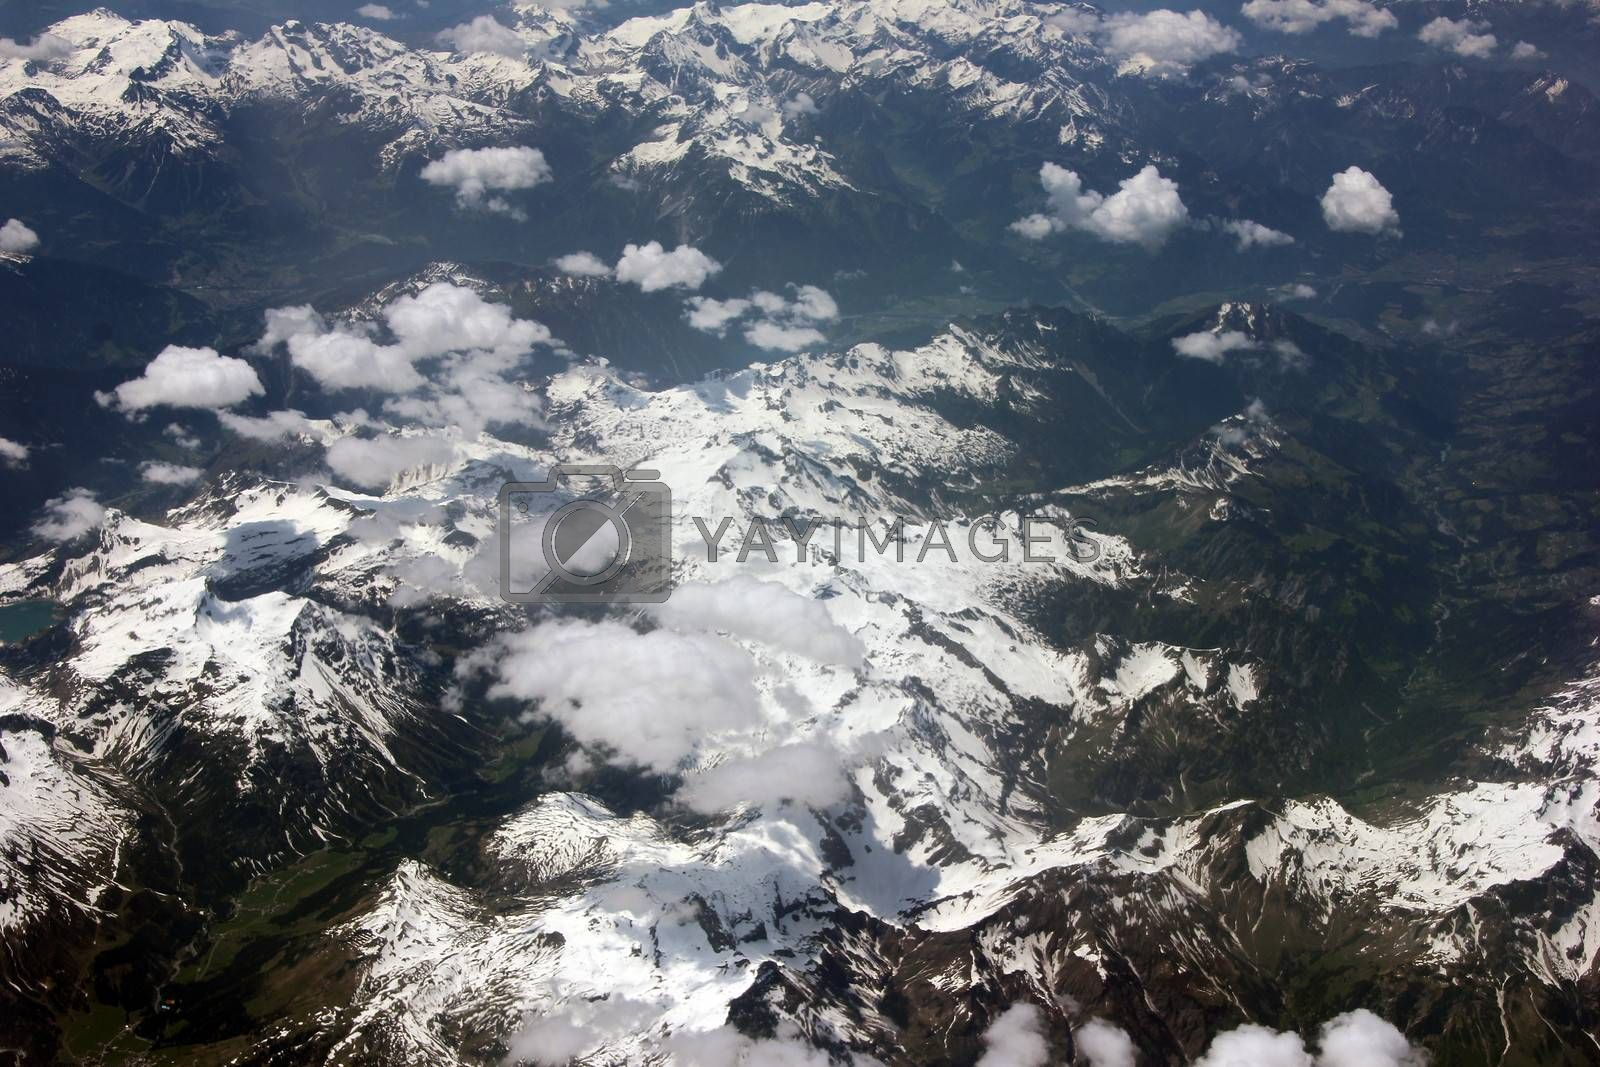 Switzerland and Austria  as seen from an airplane window